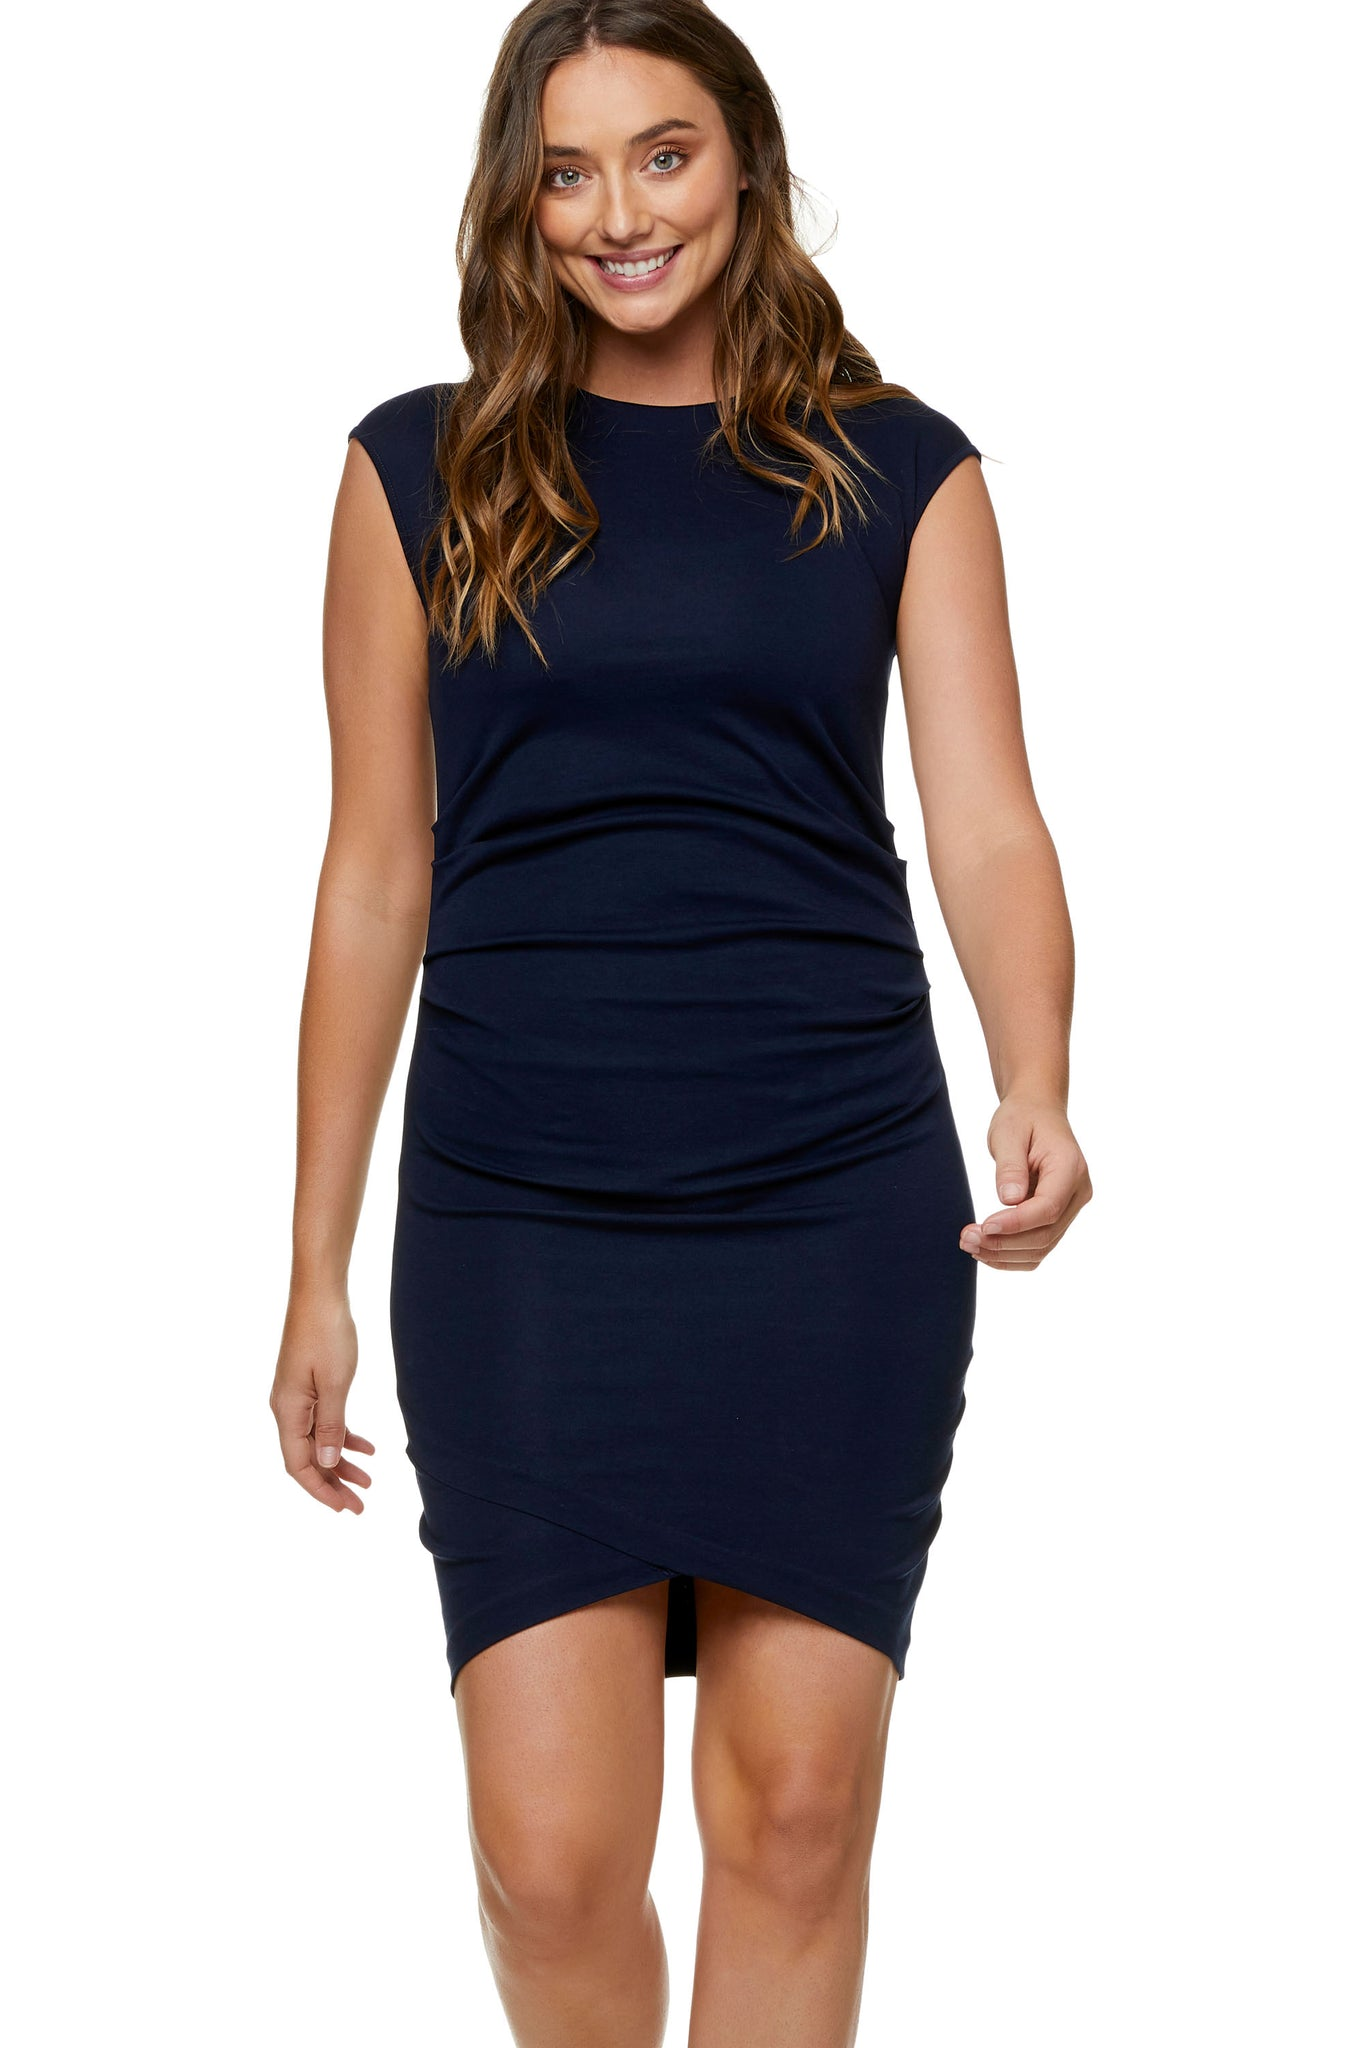 Navy Maternity Dress - Work Maternity Dress 5